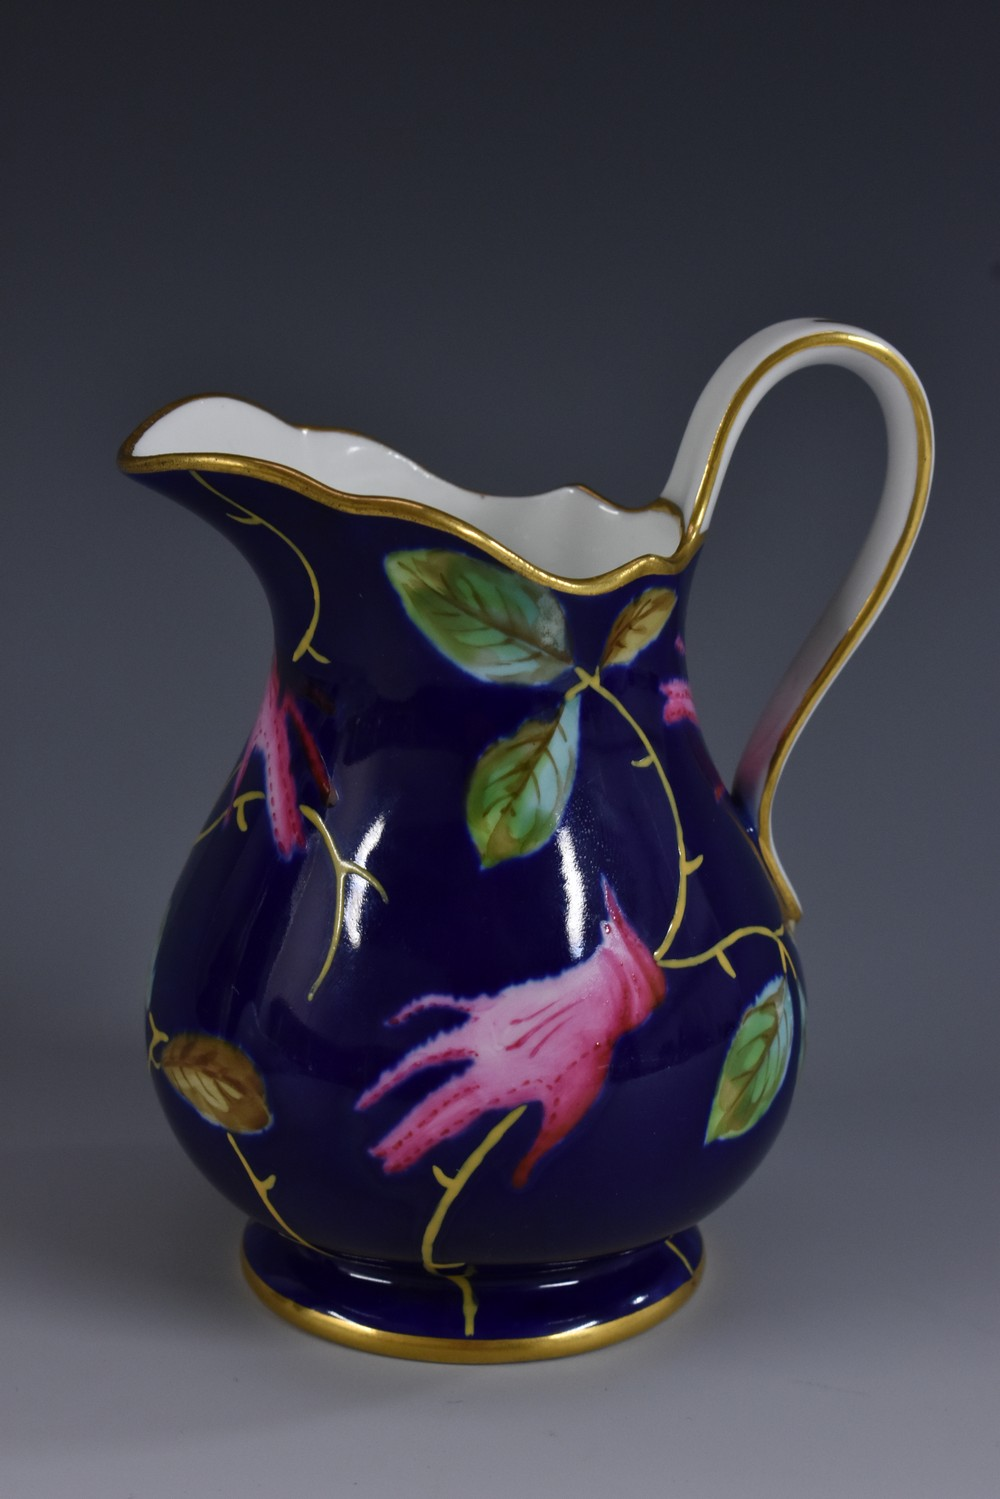 royal-crown-derby-salvadore -dali-jug.jpg